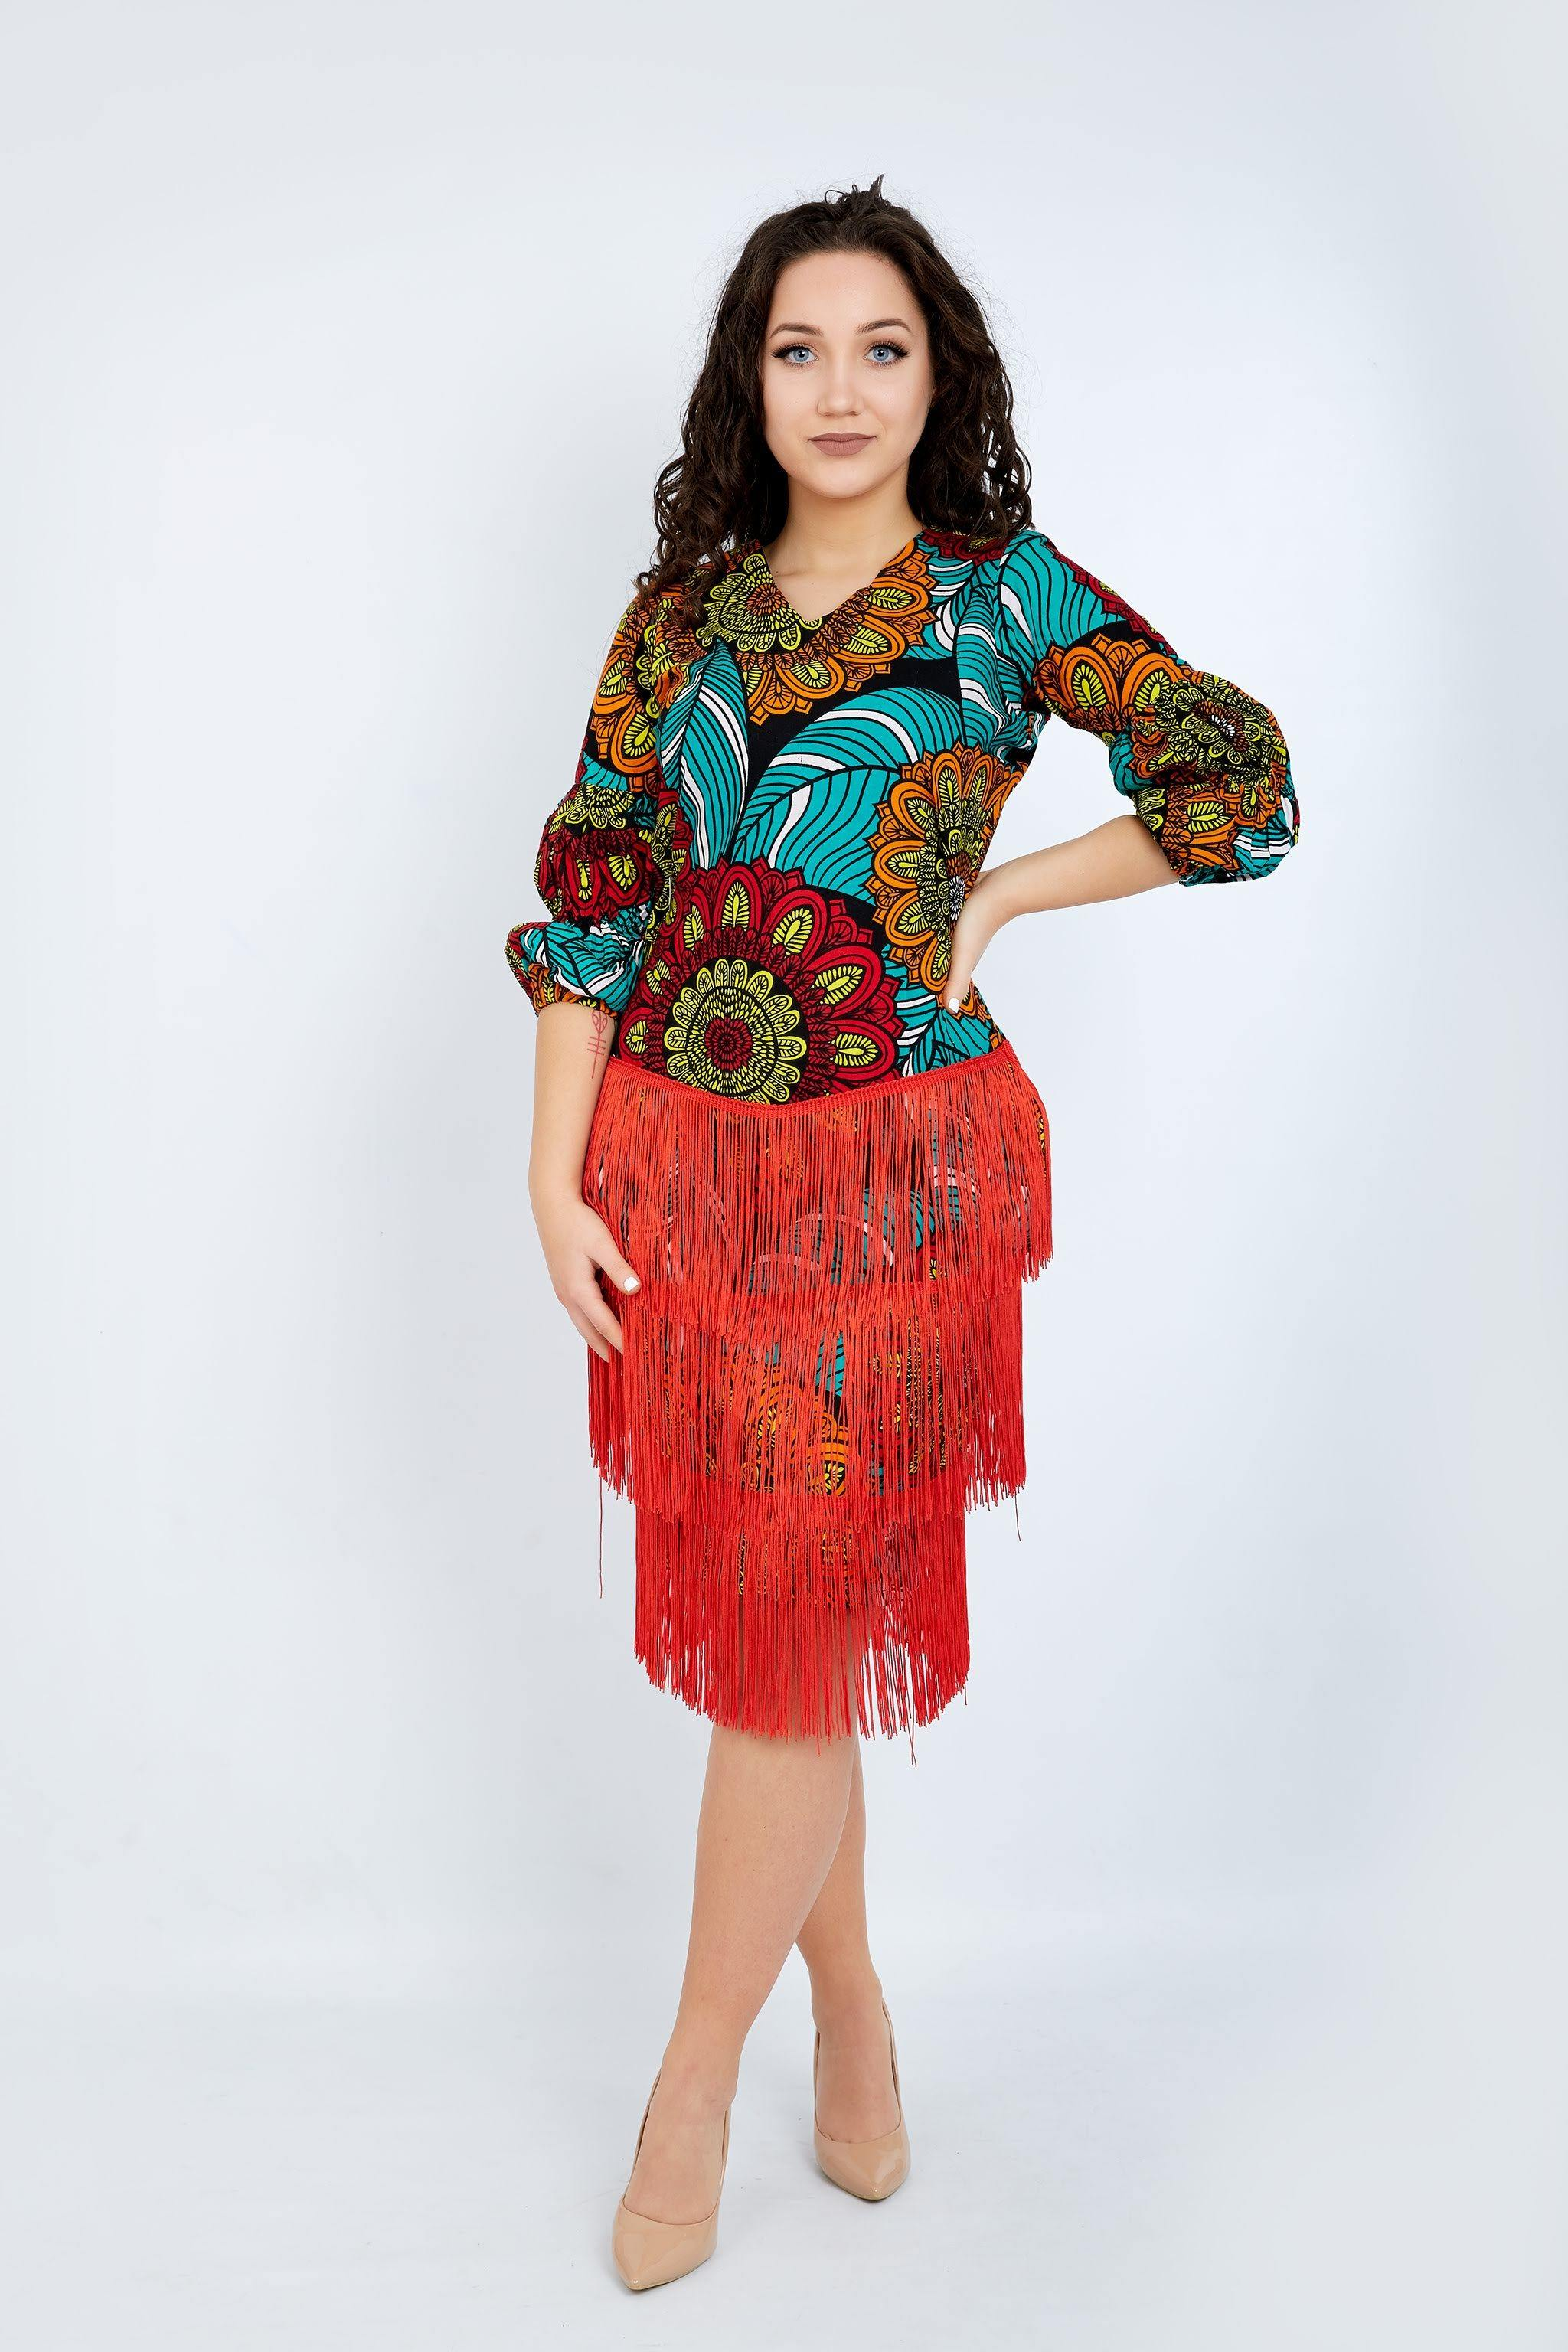 WAA - Ankara Fringe Dress